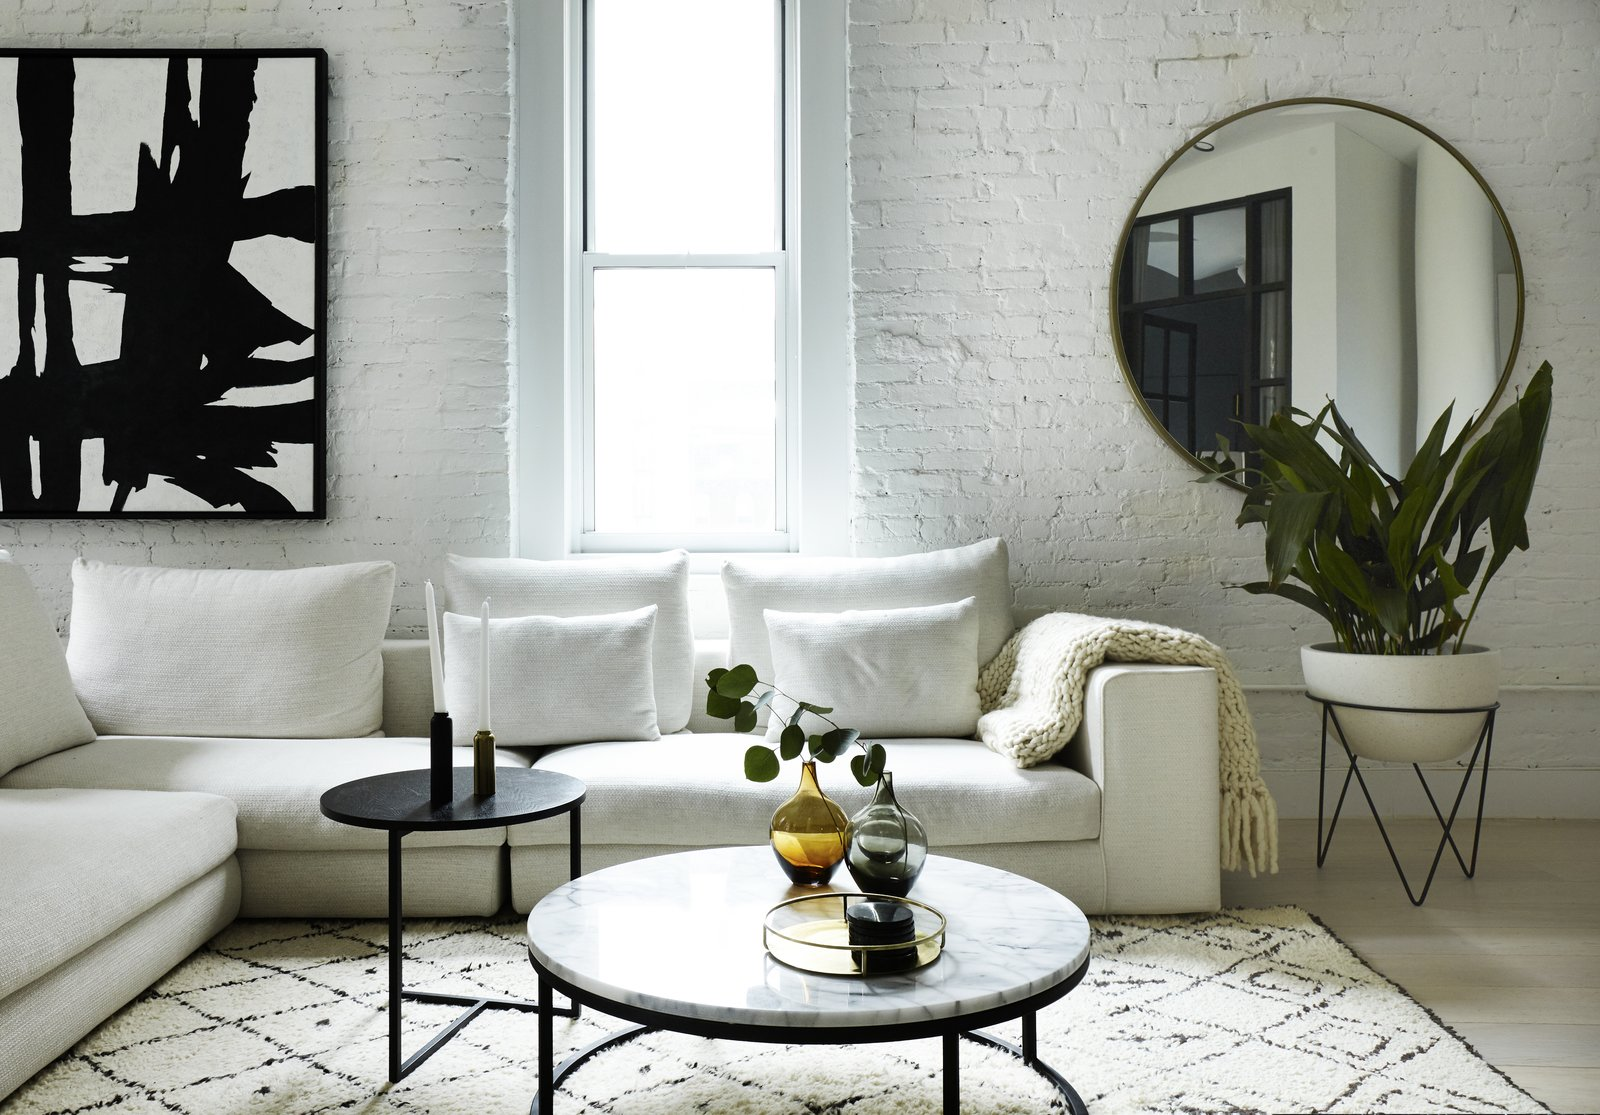 Photo 3 of 19 in Tour an Insanely Stylish NYC Loft With Major Scandinavian Vibes